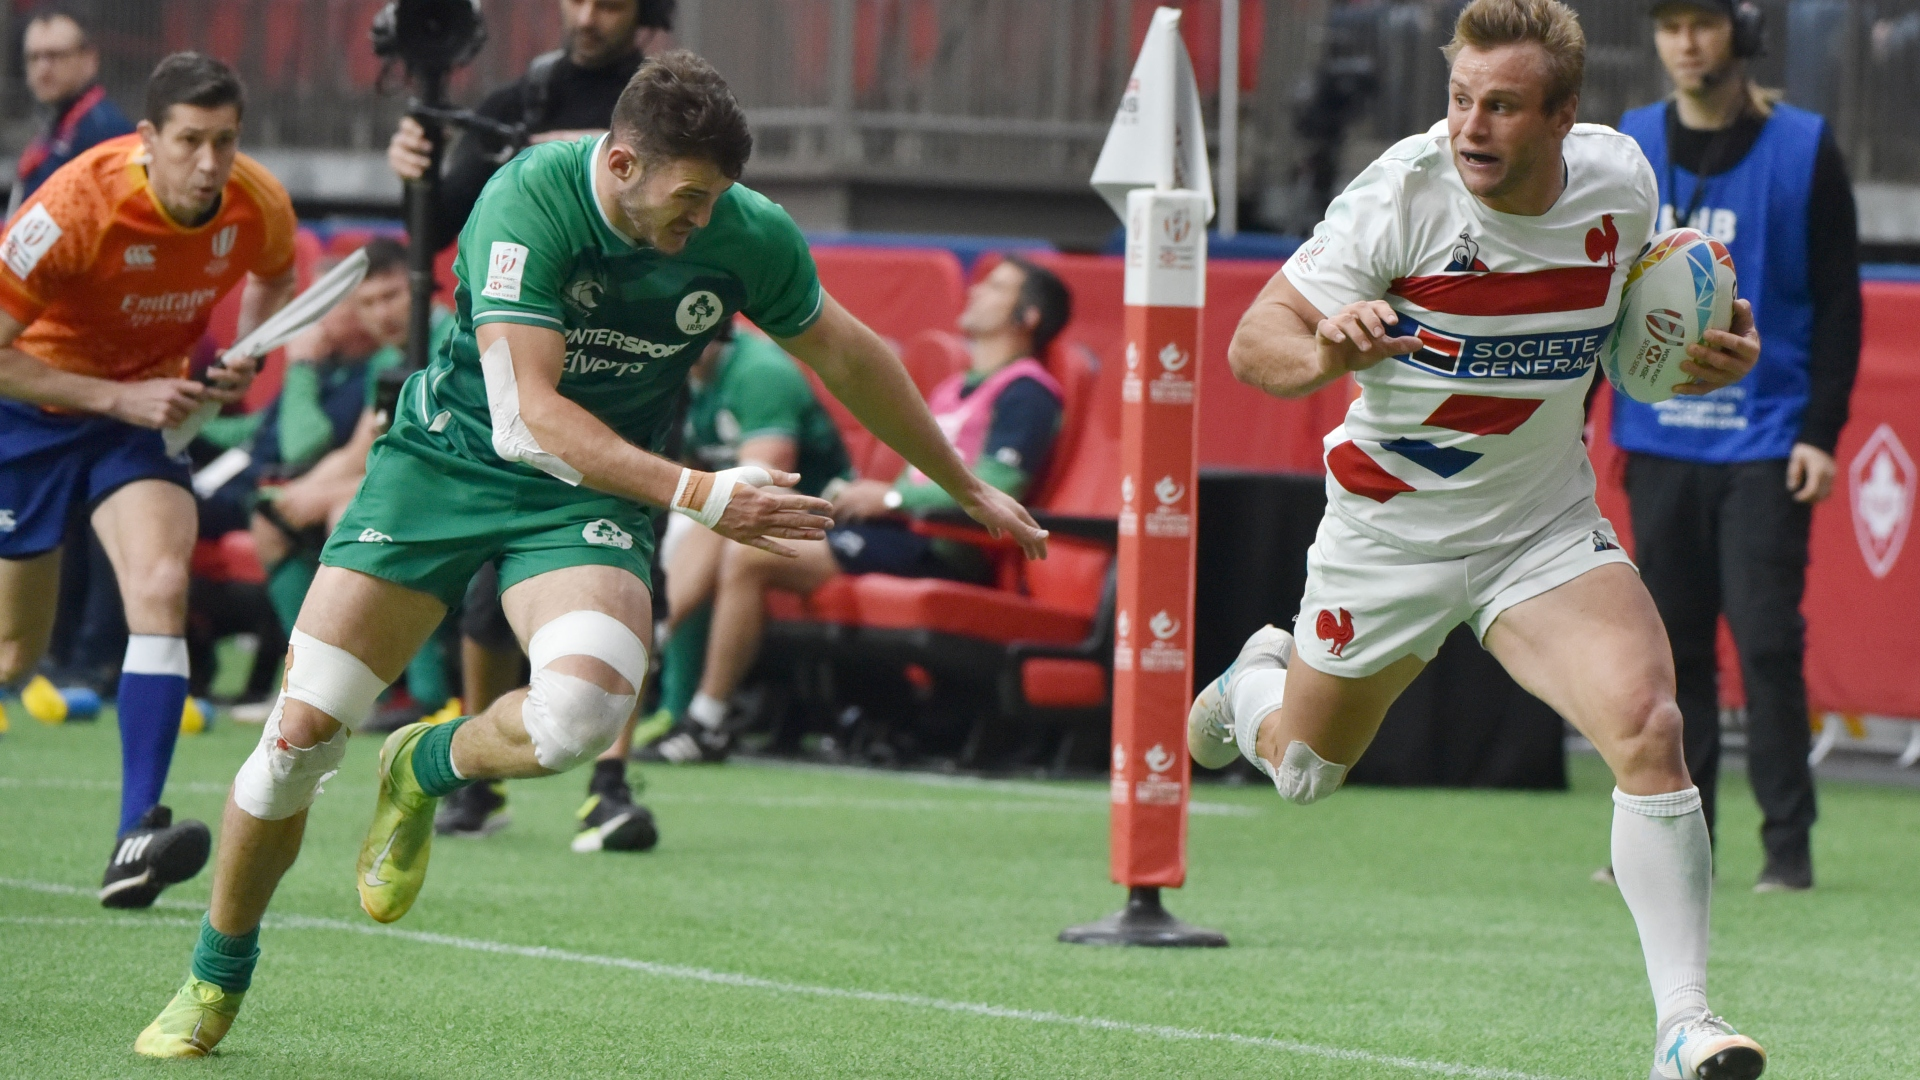 World Rugby Sevens Series schedule announced for 2021 - Rugby World